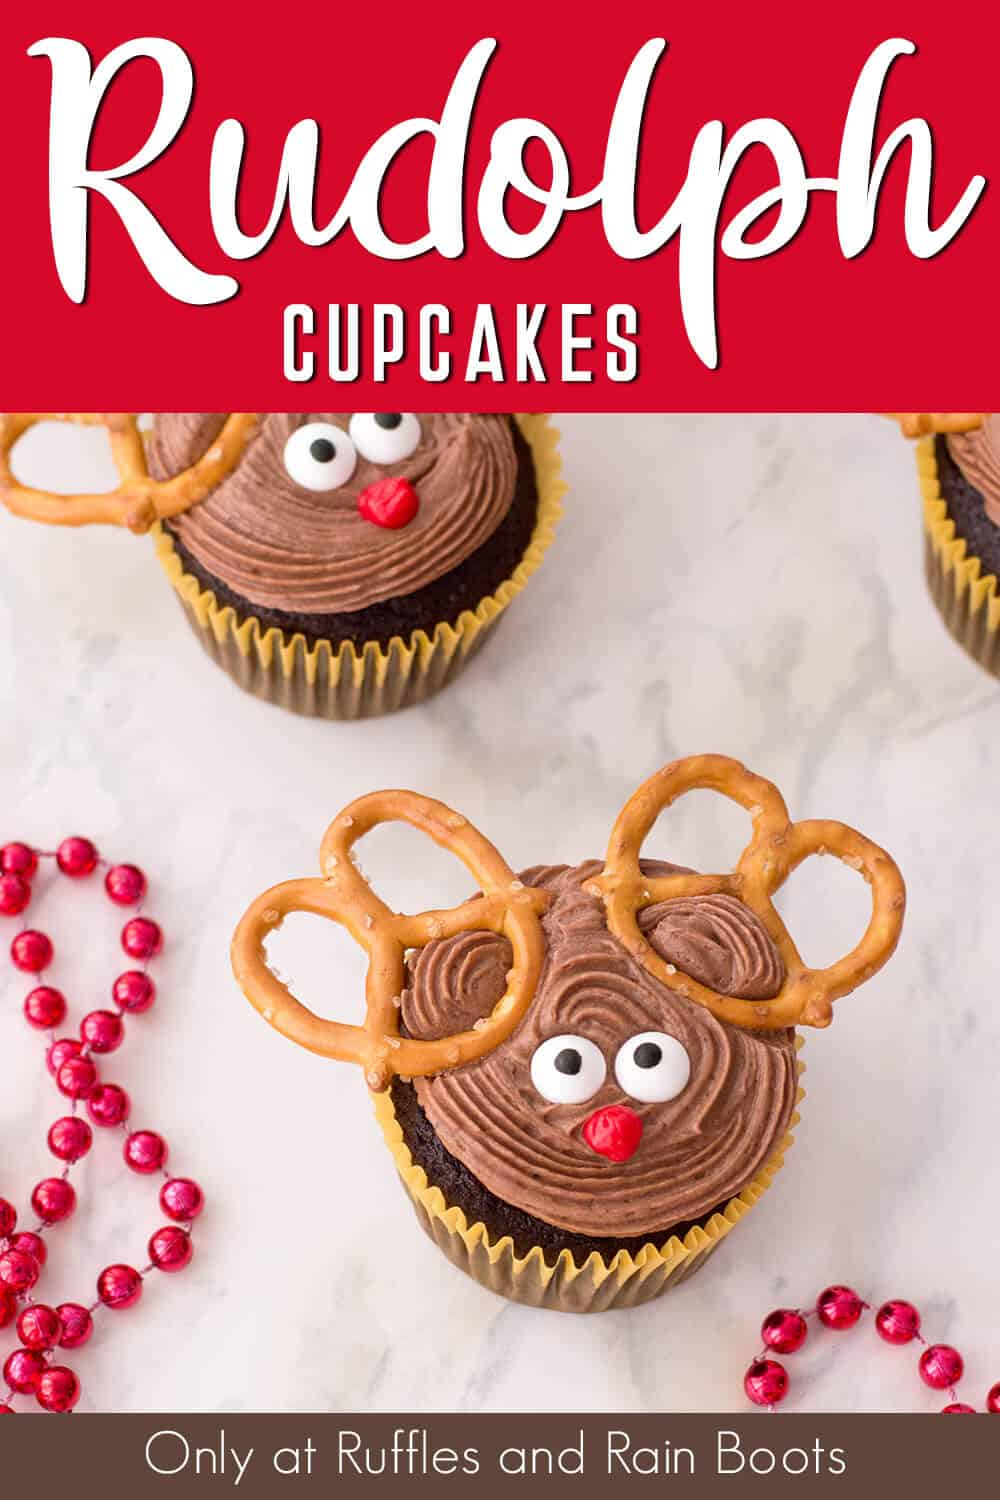 easy pretzel reindeer cupcakes with text which reads rudolph cupcakes